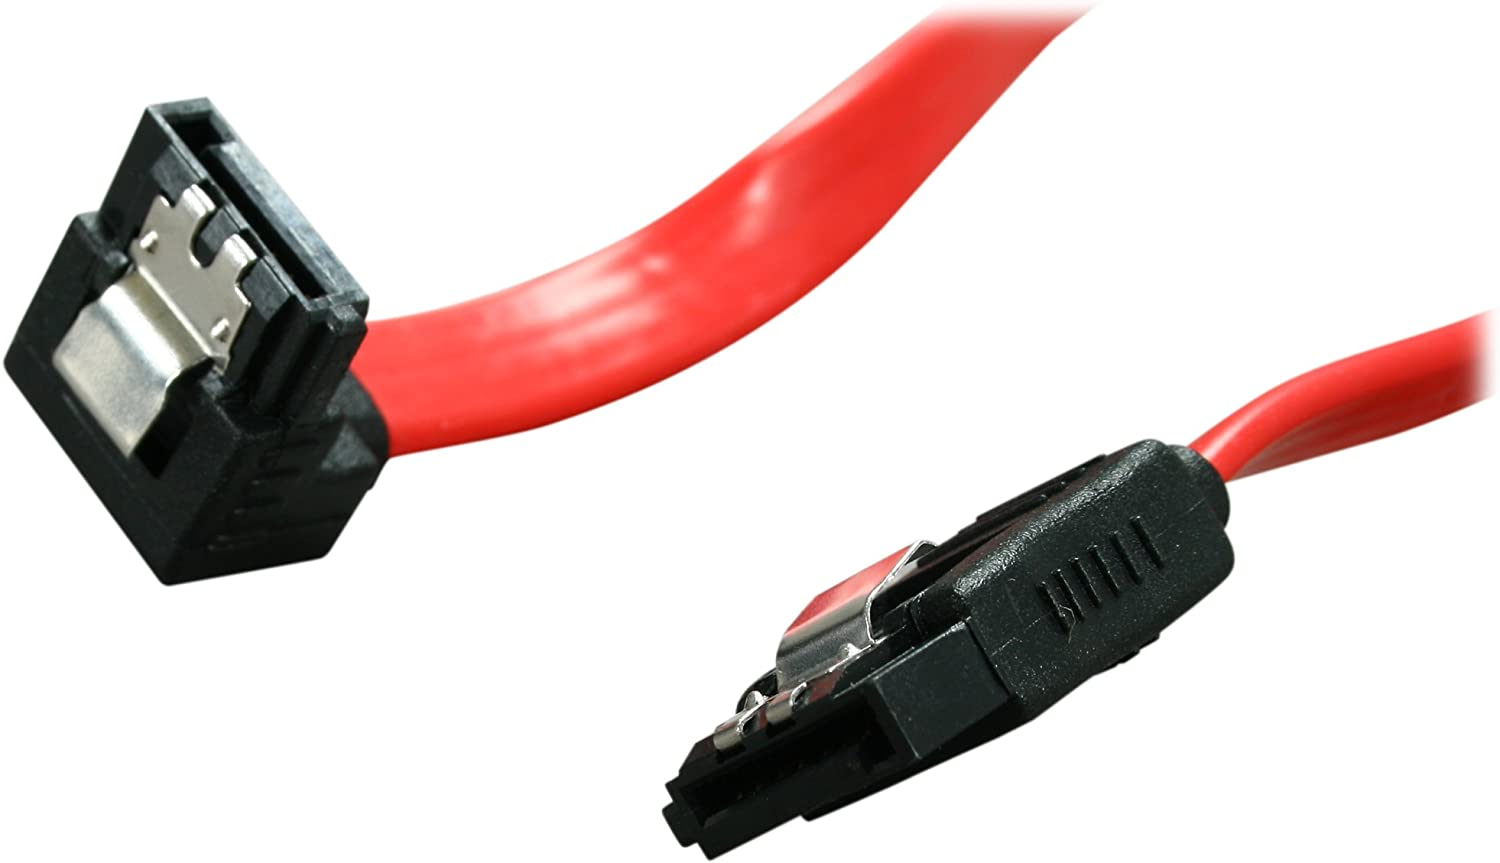 Rosewill SATA Cable 90 Degree Right Angle SATA III 6.0 Gbps, SATA Cable 12 Inches, SATA 3 Cable - 12 Inches, Red